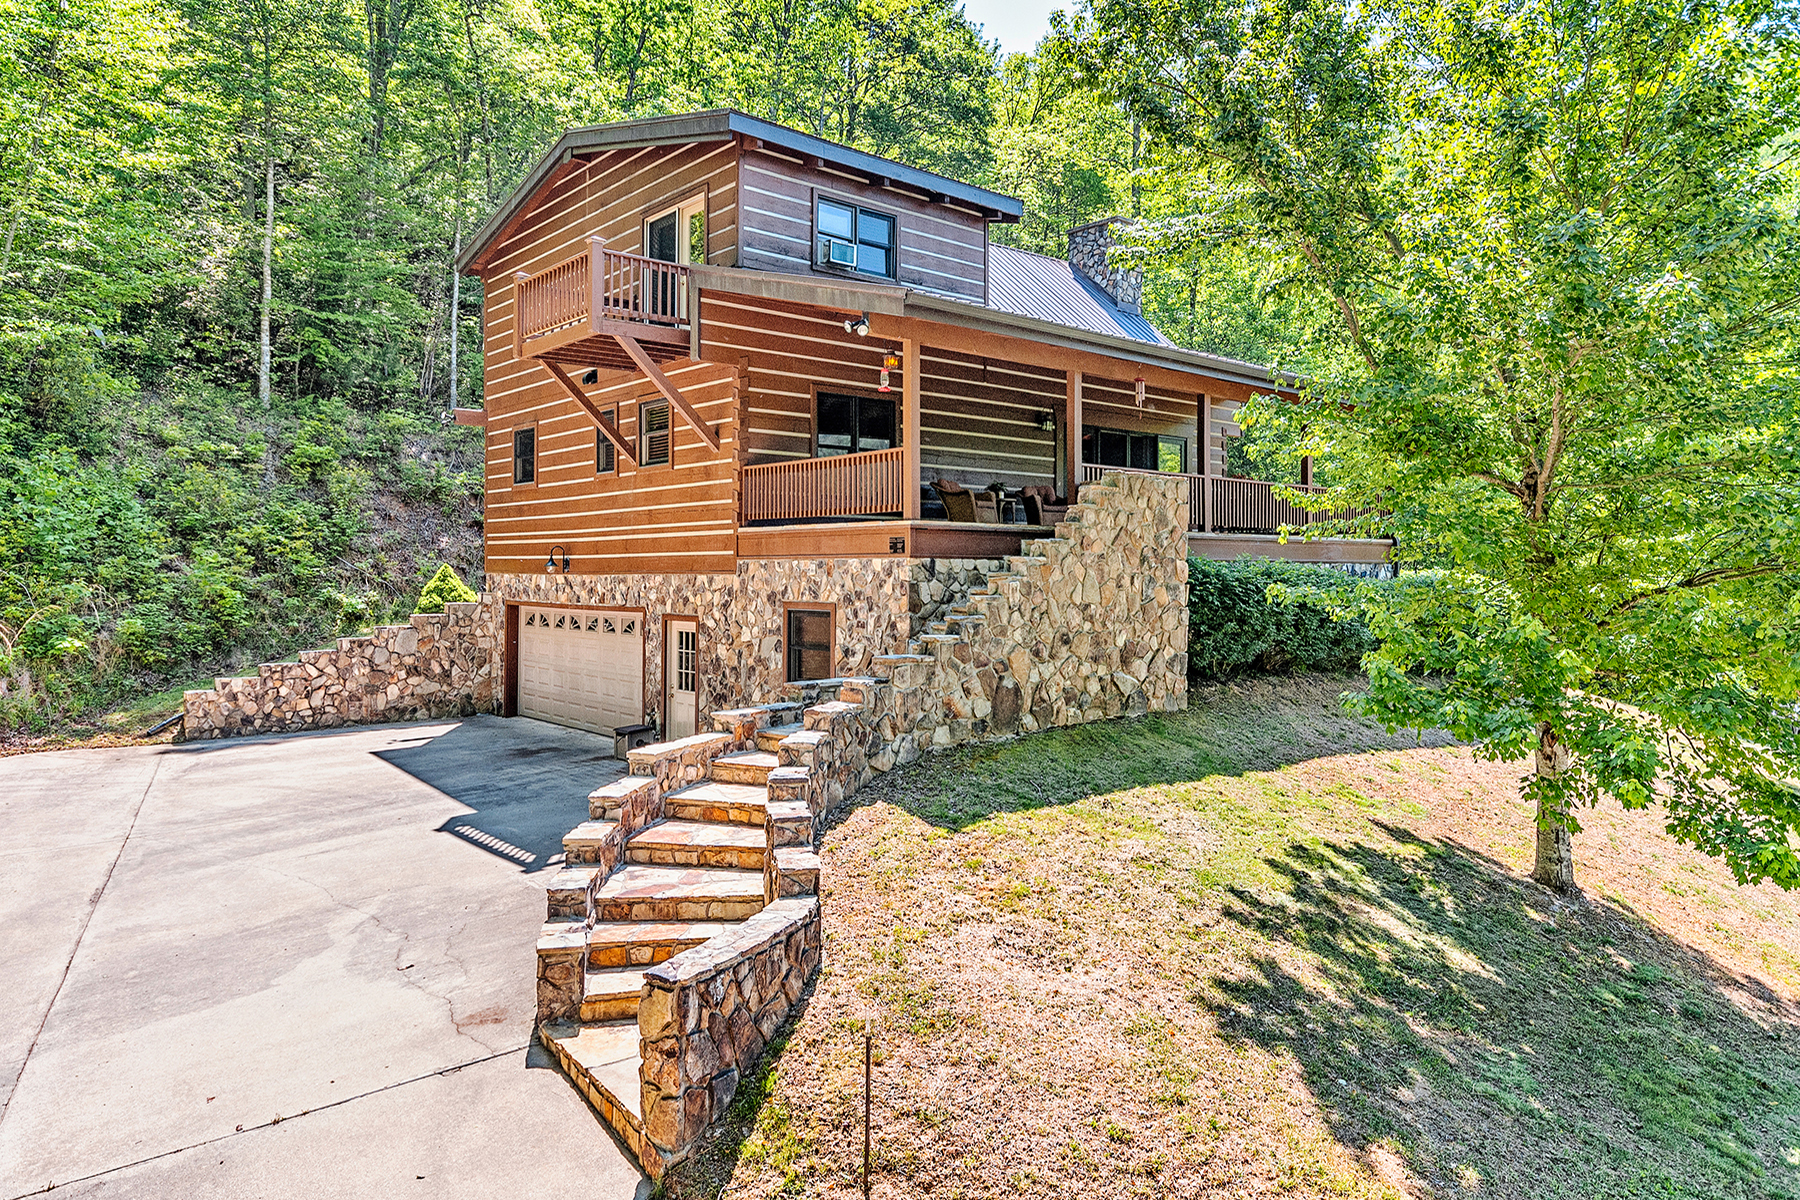 Single Family Home for Sale at FRANKLIN 3060 Tellico Rd, Franklin, North Carolina 28734 United States